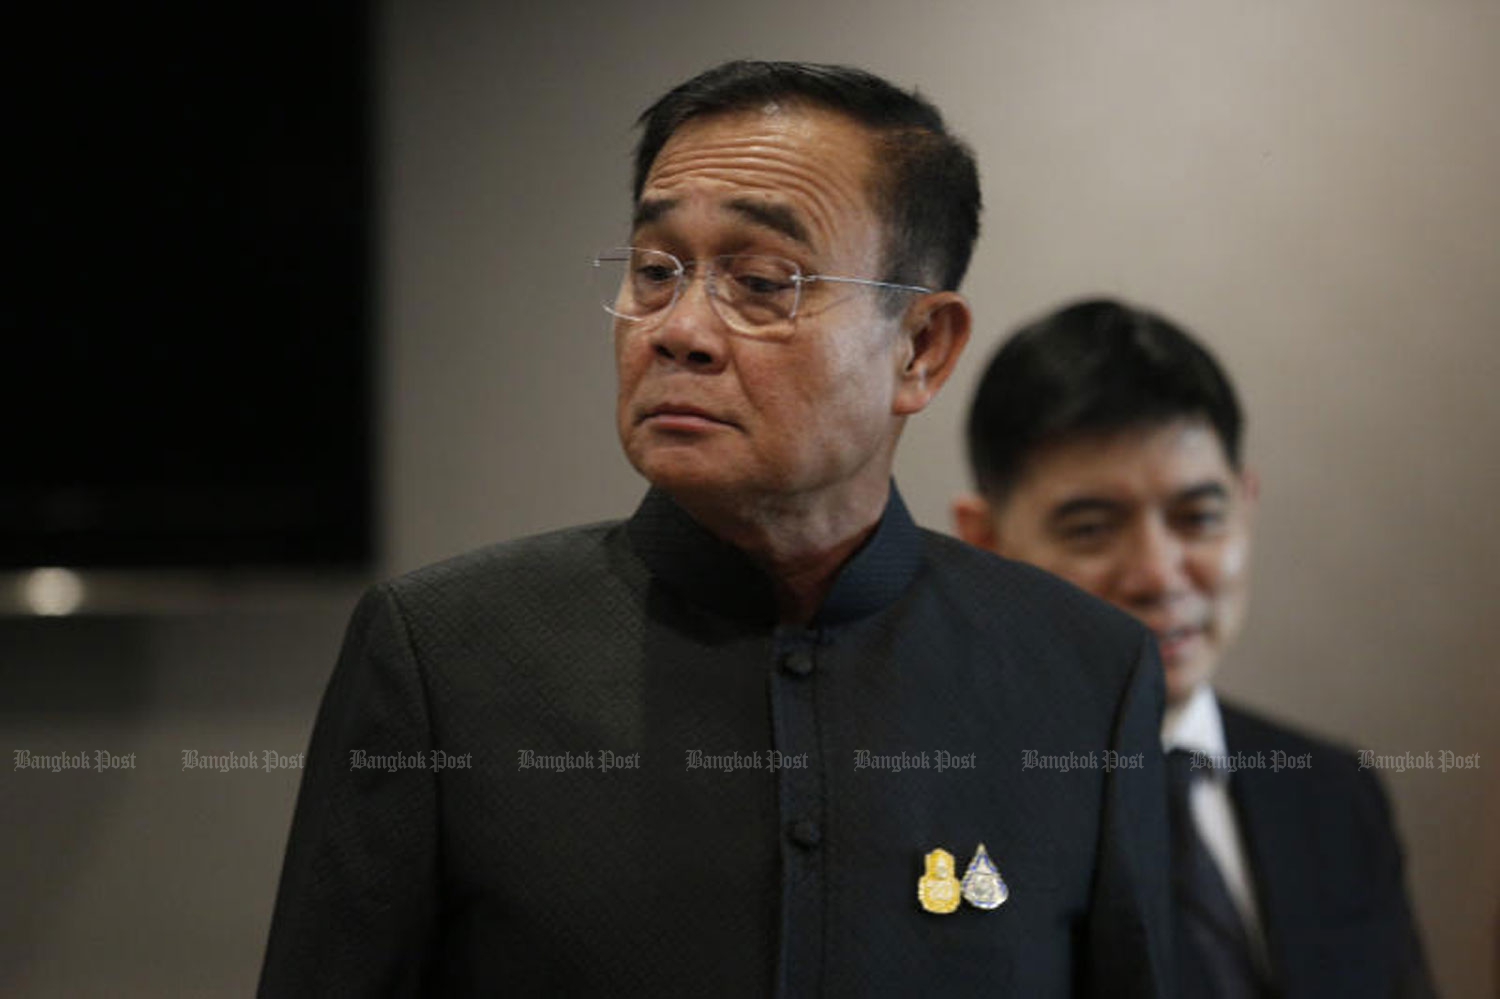 Prime Minister Prayut Chan-o-cha in a press conference at Government House last week. (Photo by Pornprom Satrabhaya)